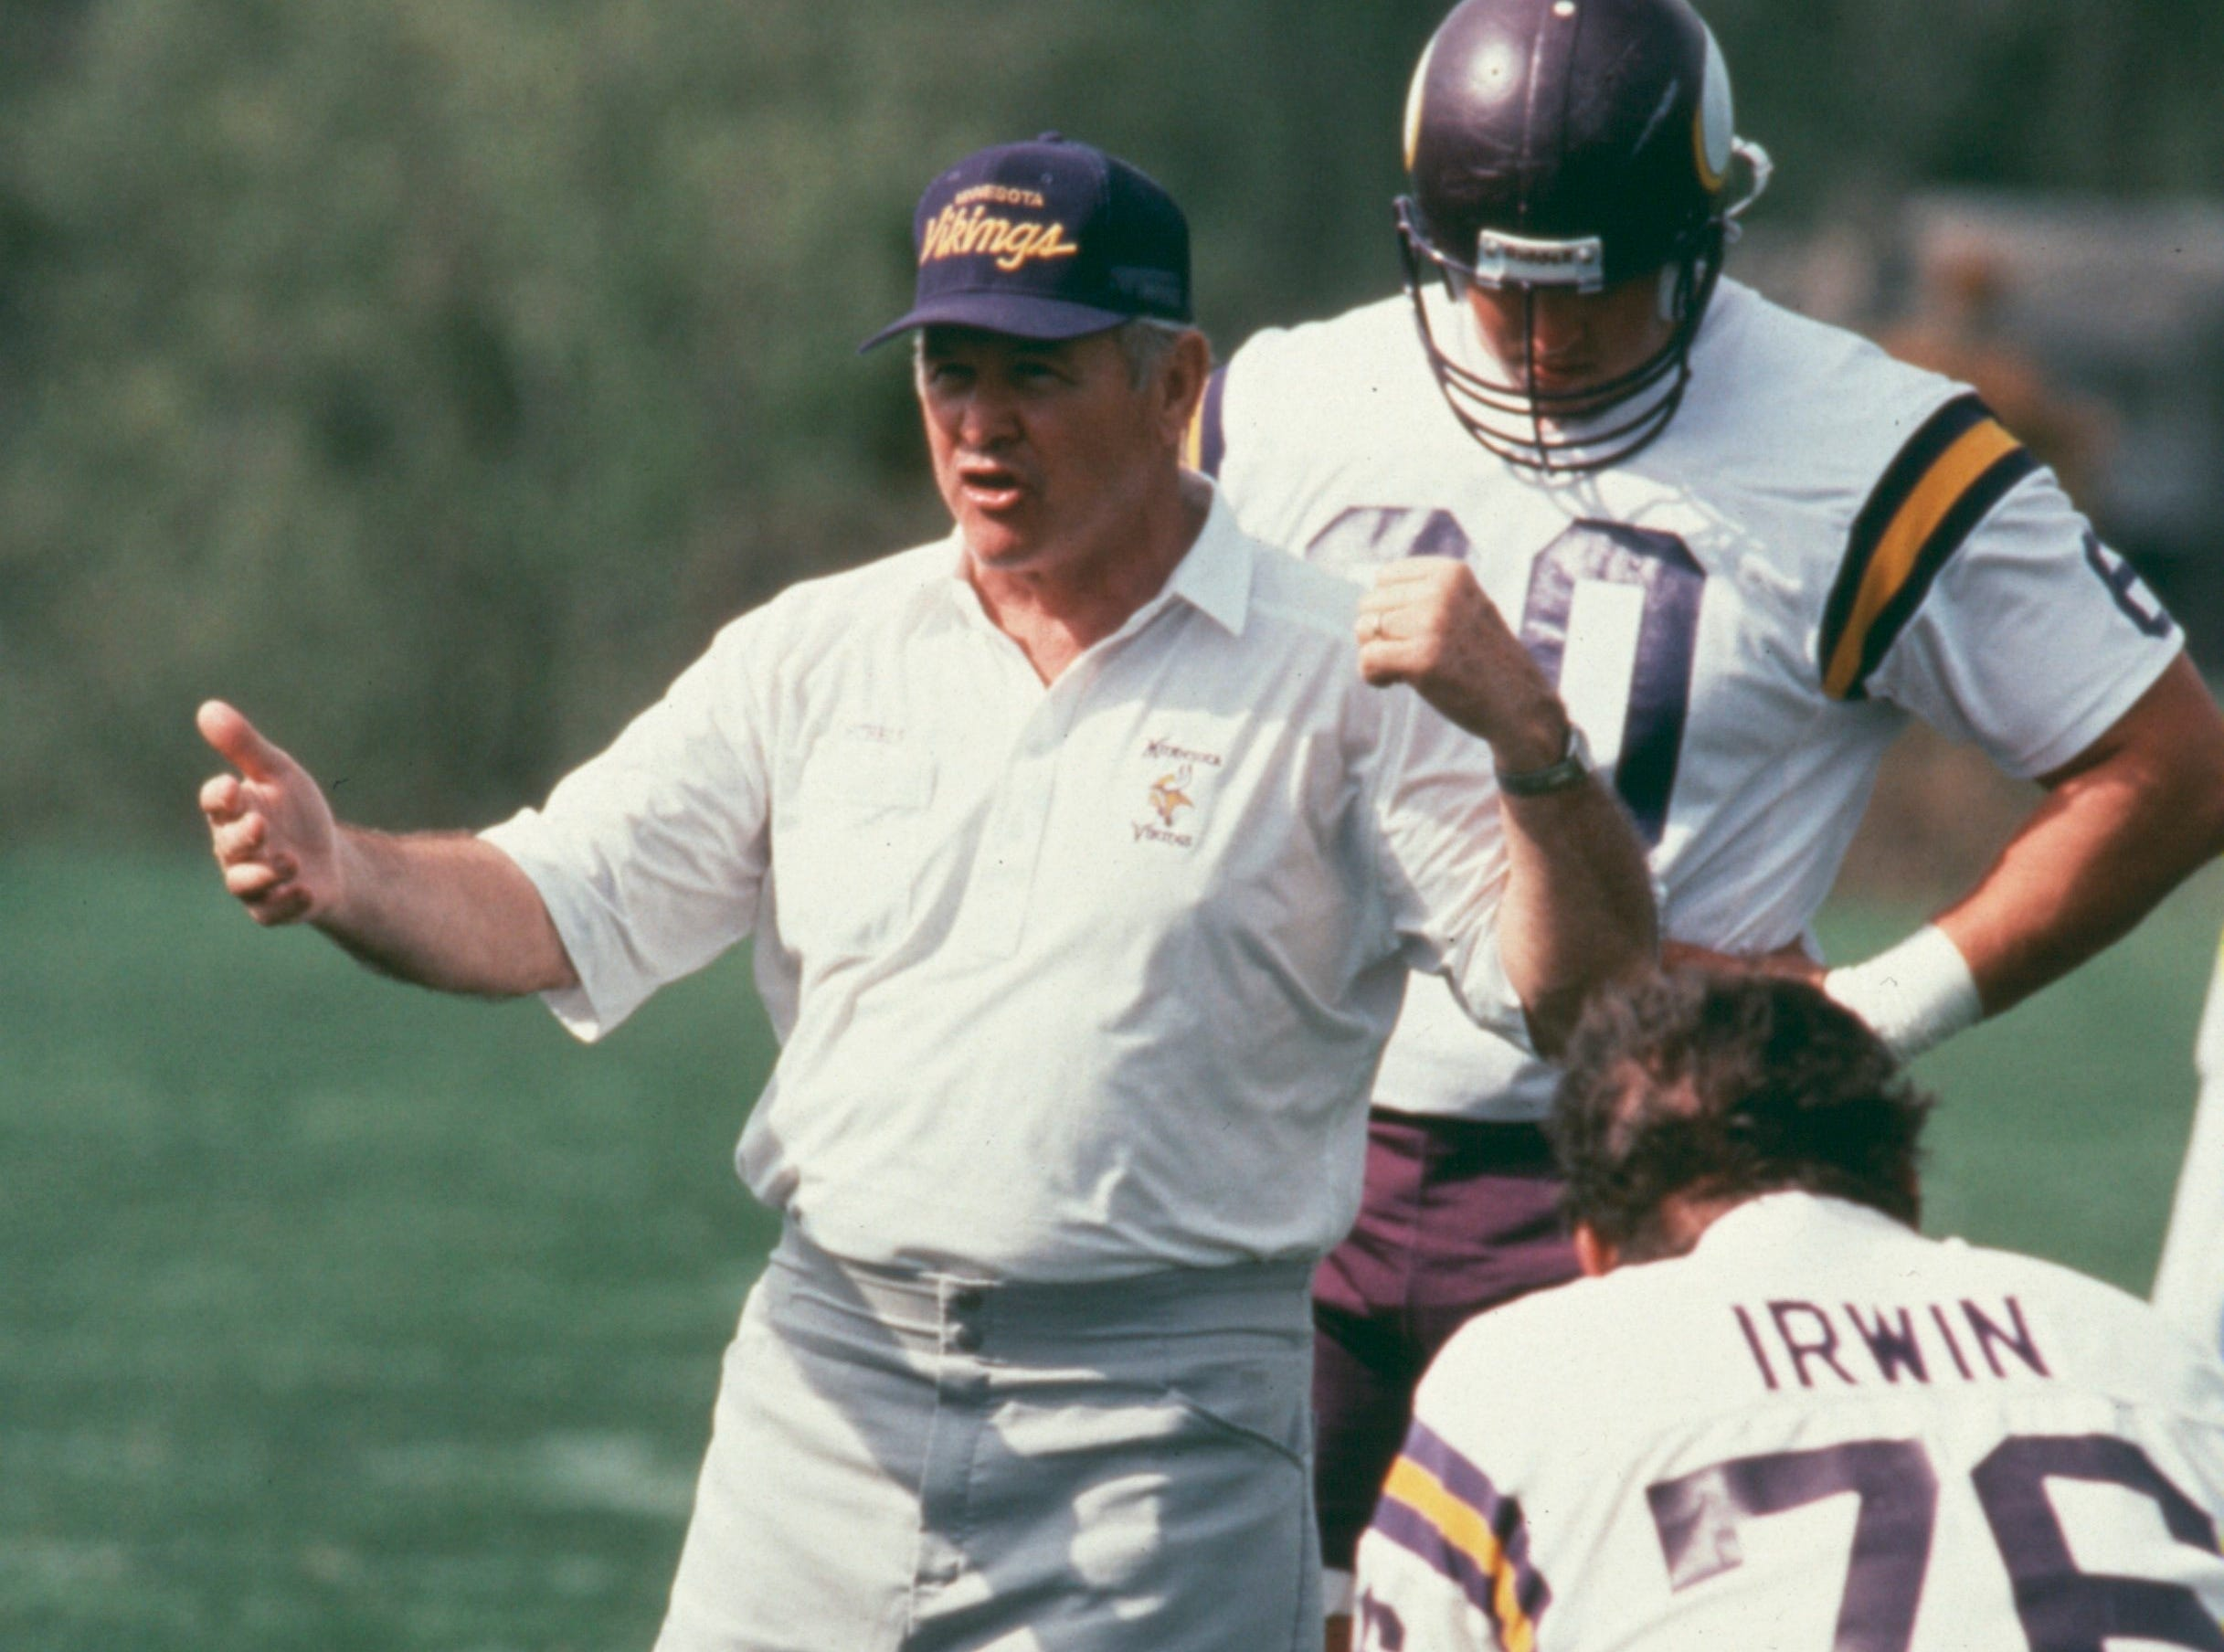 John Michels shown in an undated photo with Knoxville native Tim Irwin during practice with the Minnesota Vikings.